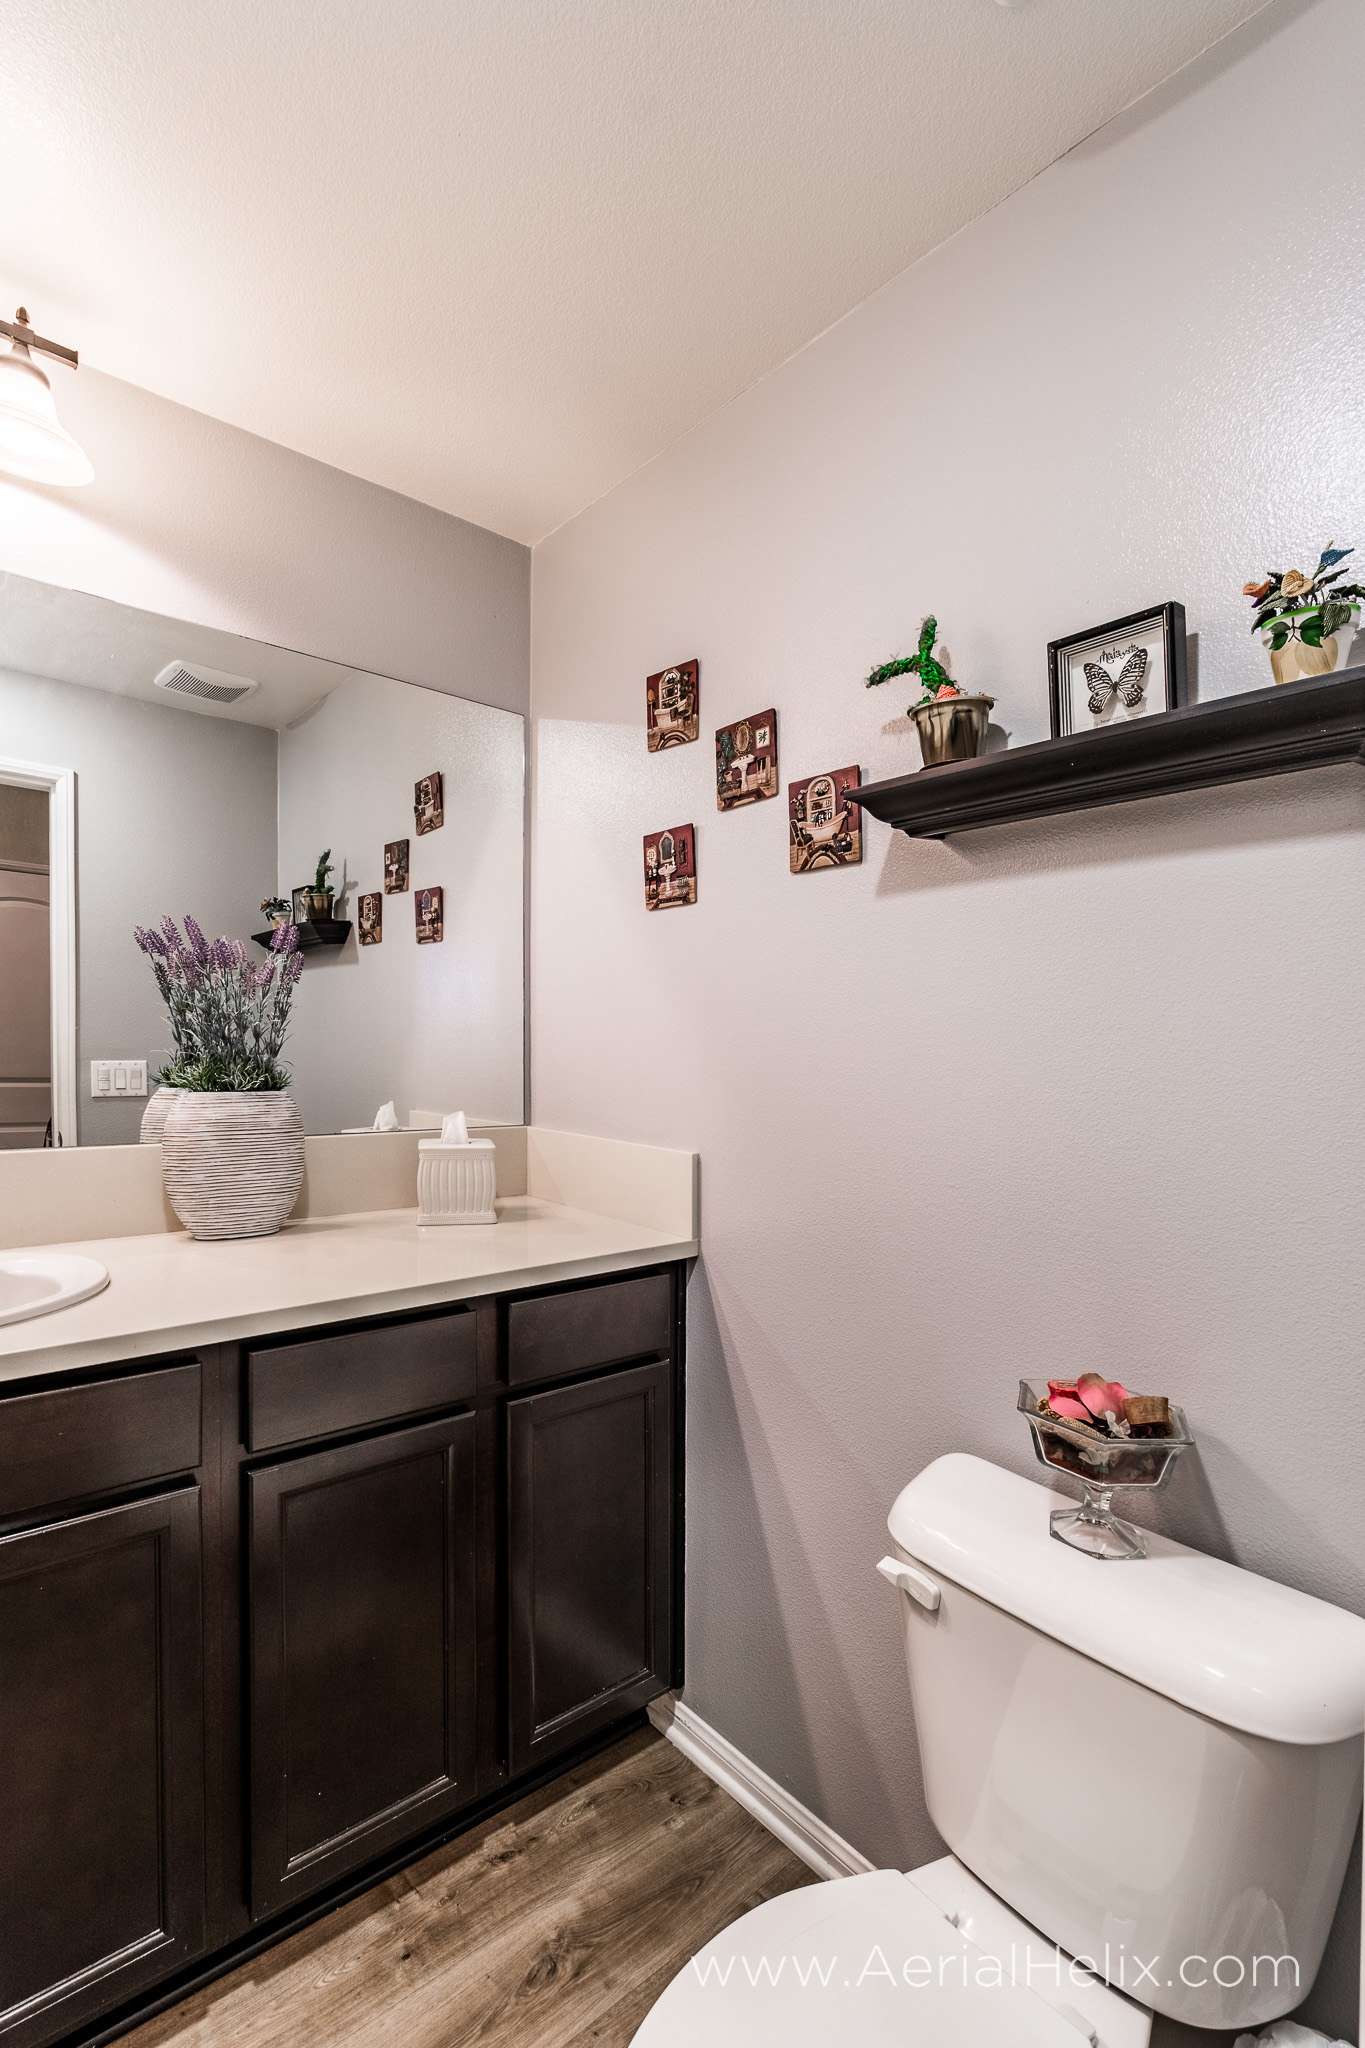 HELIX Morhouse Ave - Real-estate-photographer-20.jpg